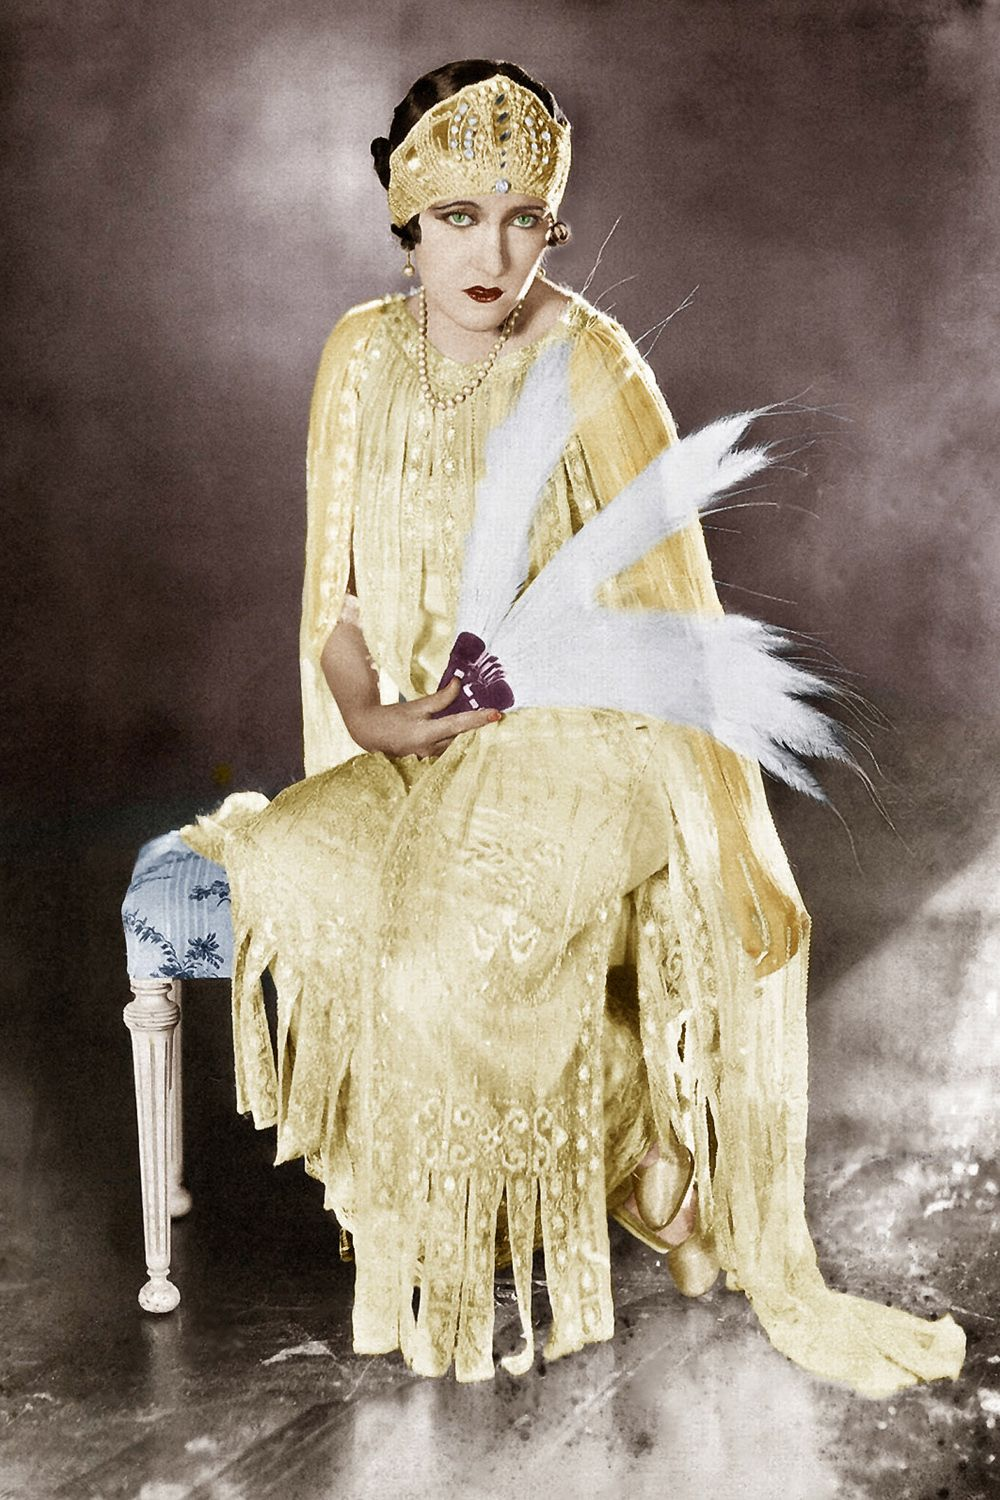 1920s Fashion Service Magazine June 1928 Bathing Suit: 1920s Fashion History: The Iconic Women Who Defined It